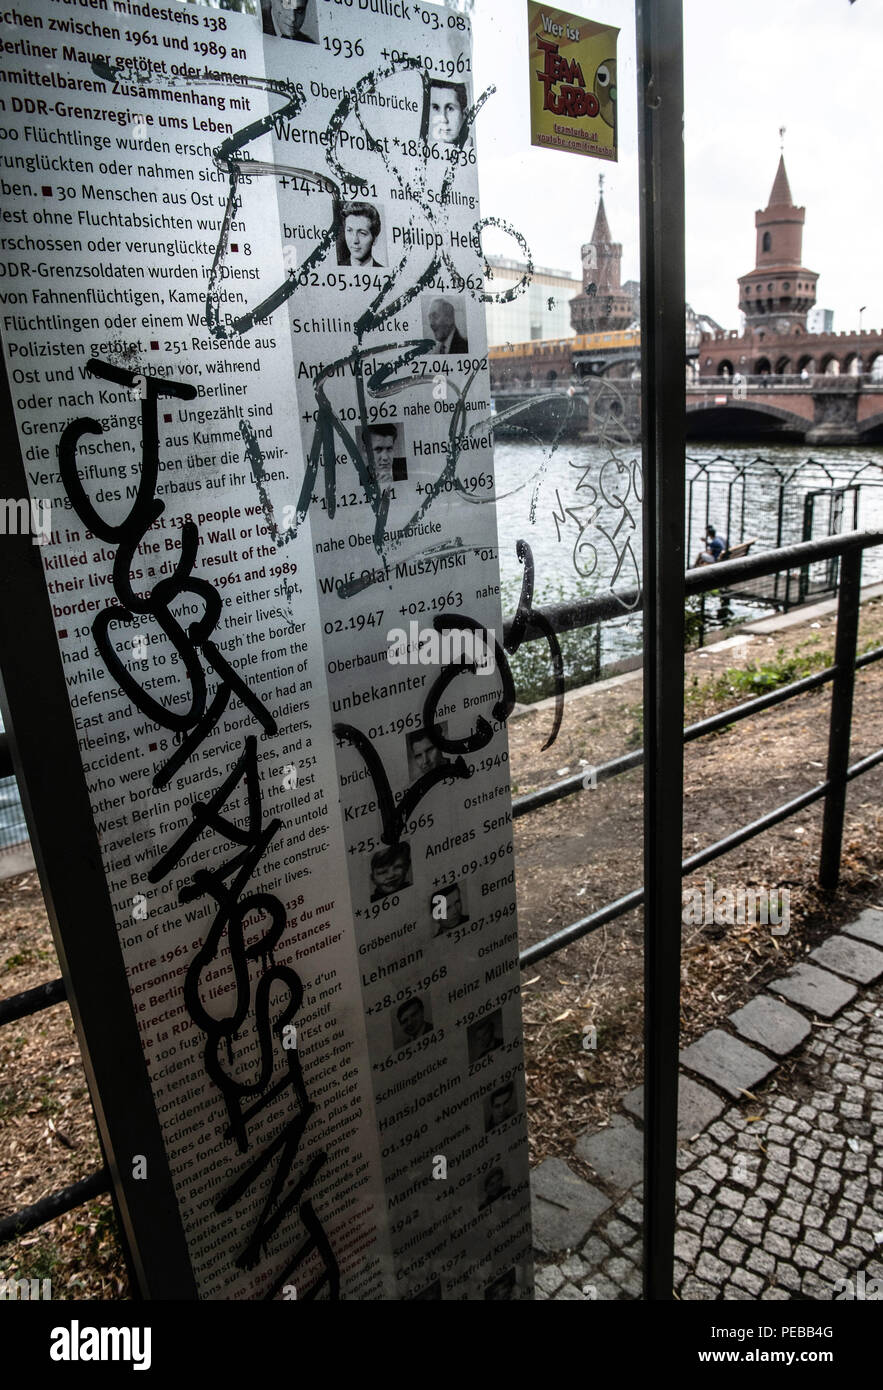 Germany, Berlin. 14th Aug, 2018. The memorial plaques for the dead on the banks of the Spree near the Oberbaum Bridge have been smeared. Unknown sprayers have smeared graffiti on the two plates for the Wall Death and stolen a funeral wreath. The police are investigating for property damage. Credit: Paul Zinken/dpa/Alamy Live News - Stock Image